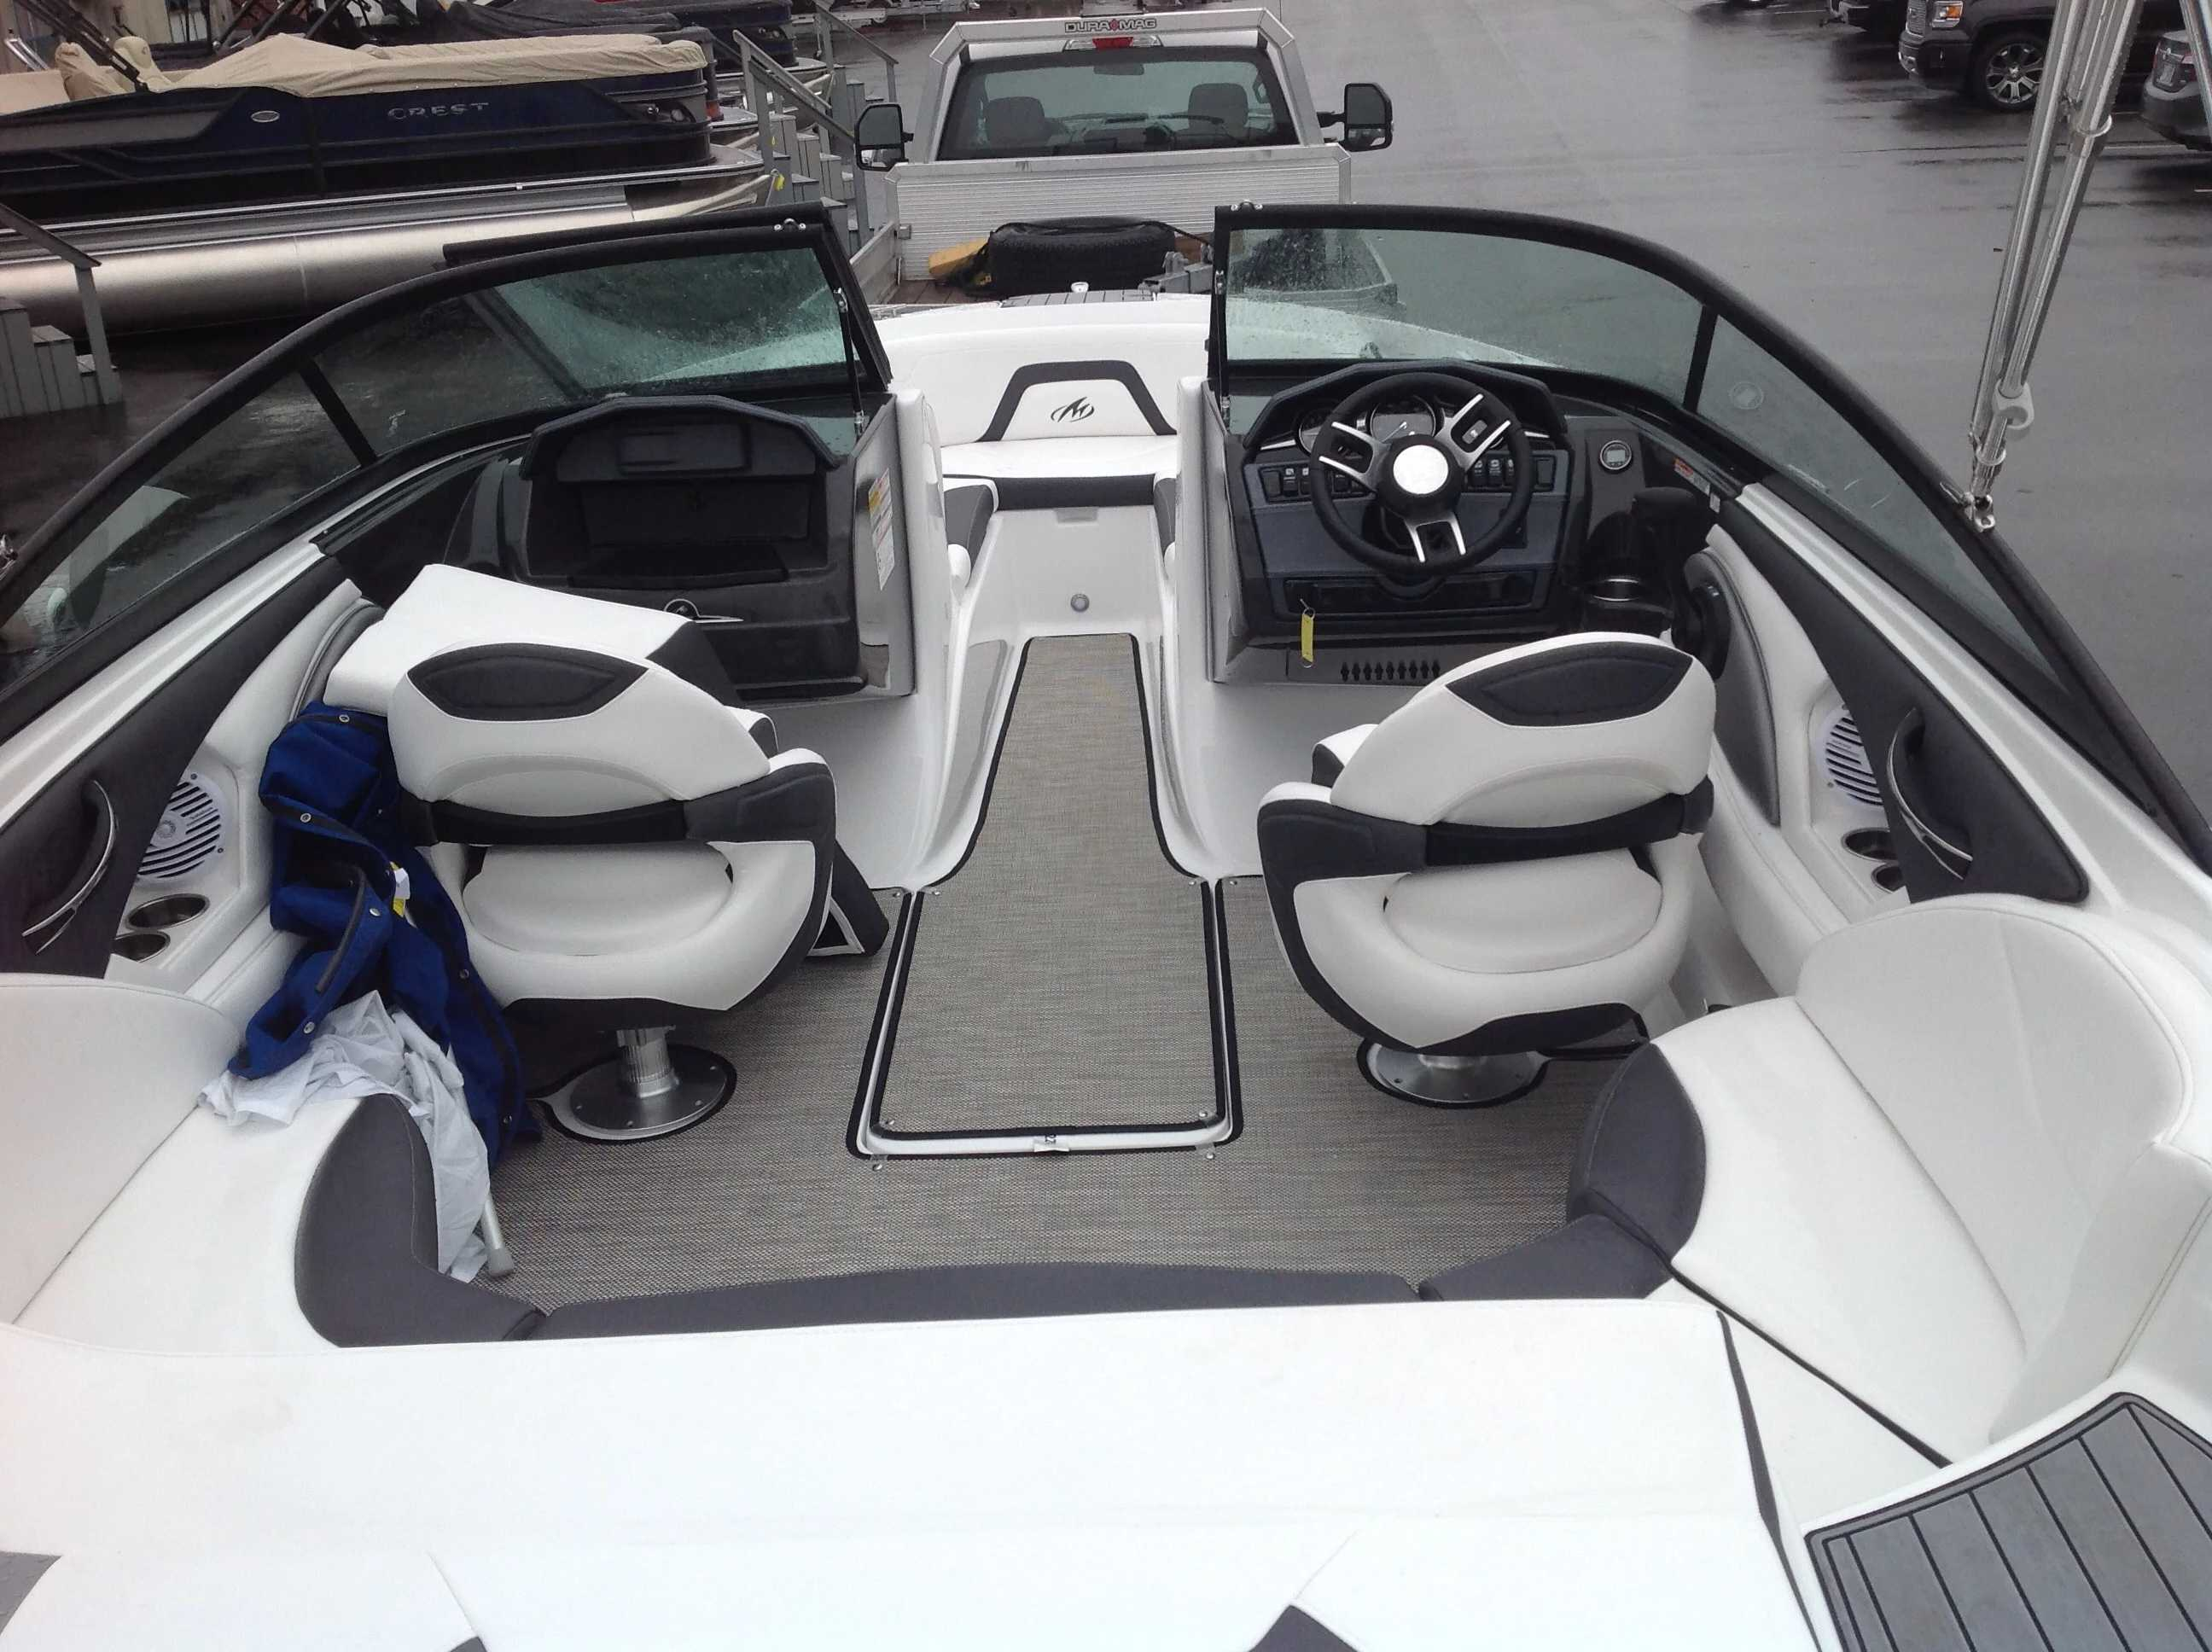 2022 Monterey boat for sale, model of the boat is 224FS & Image # 8 of 11